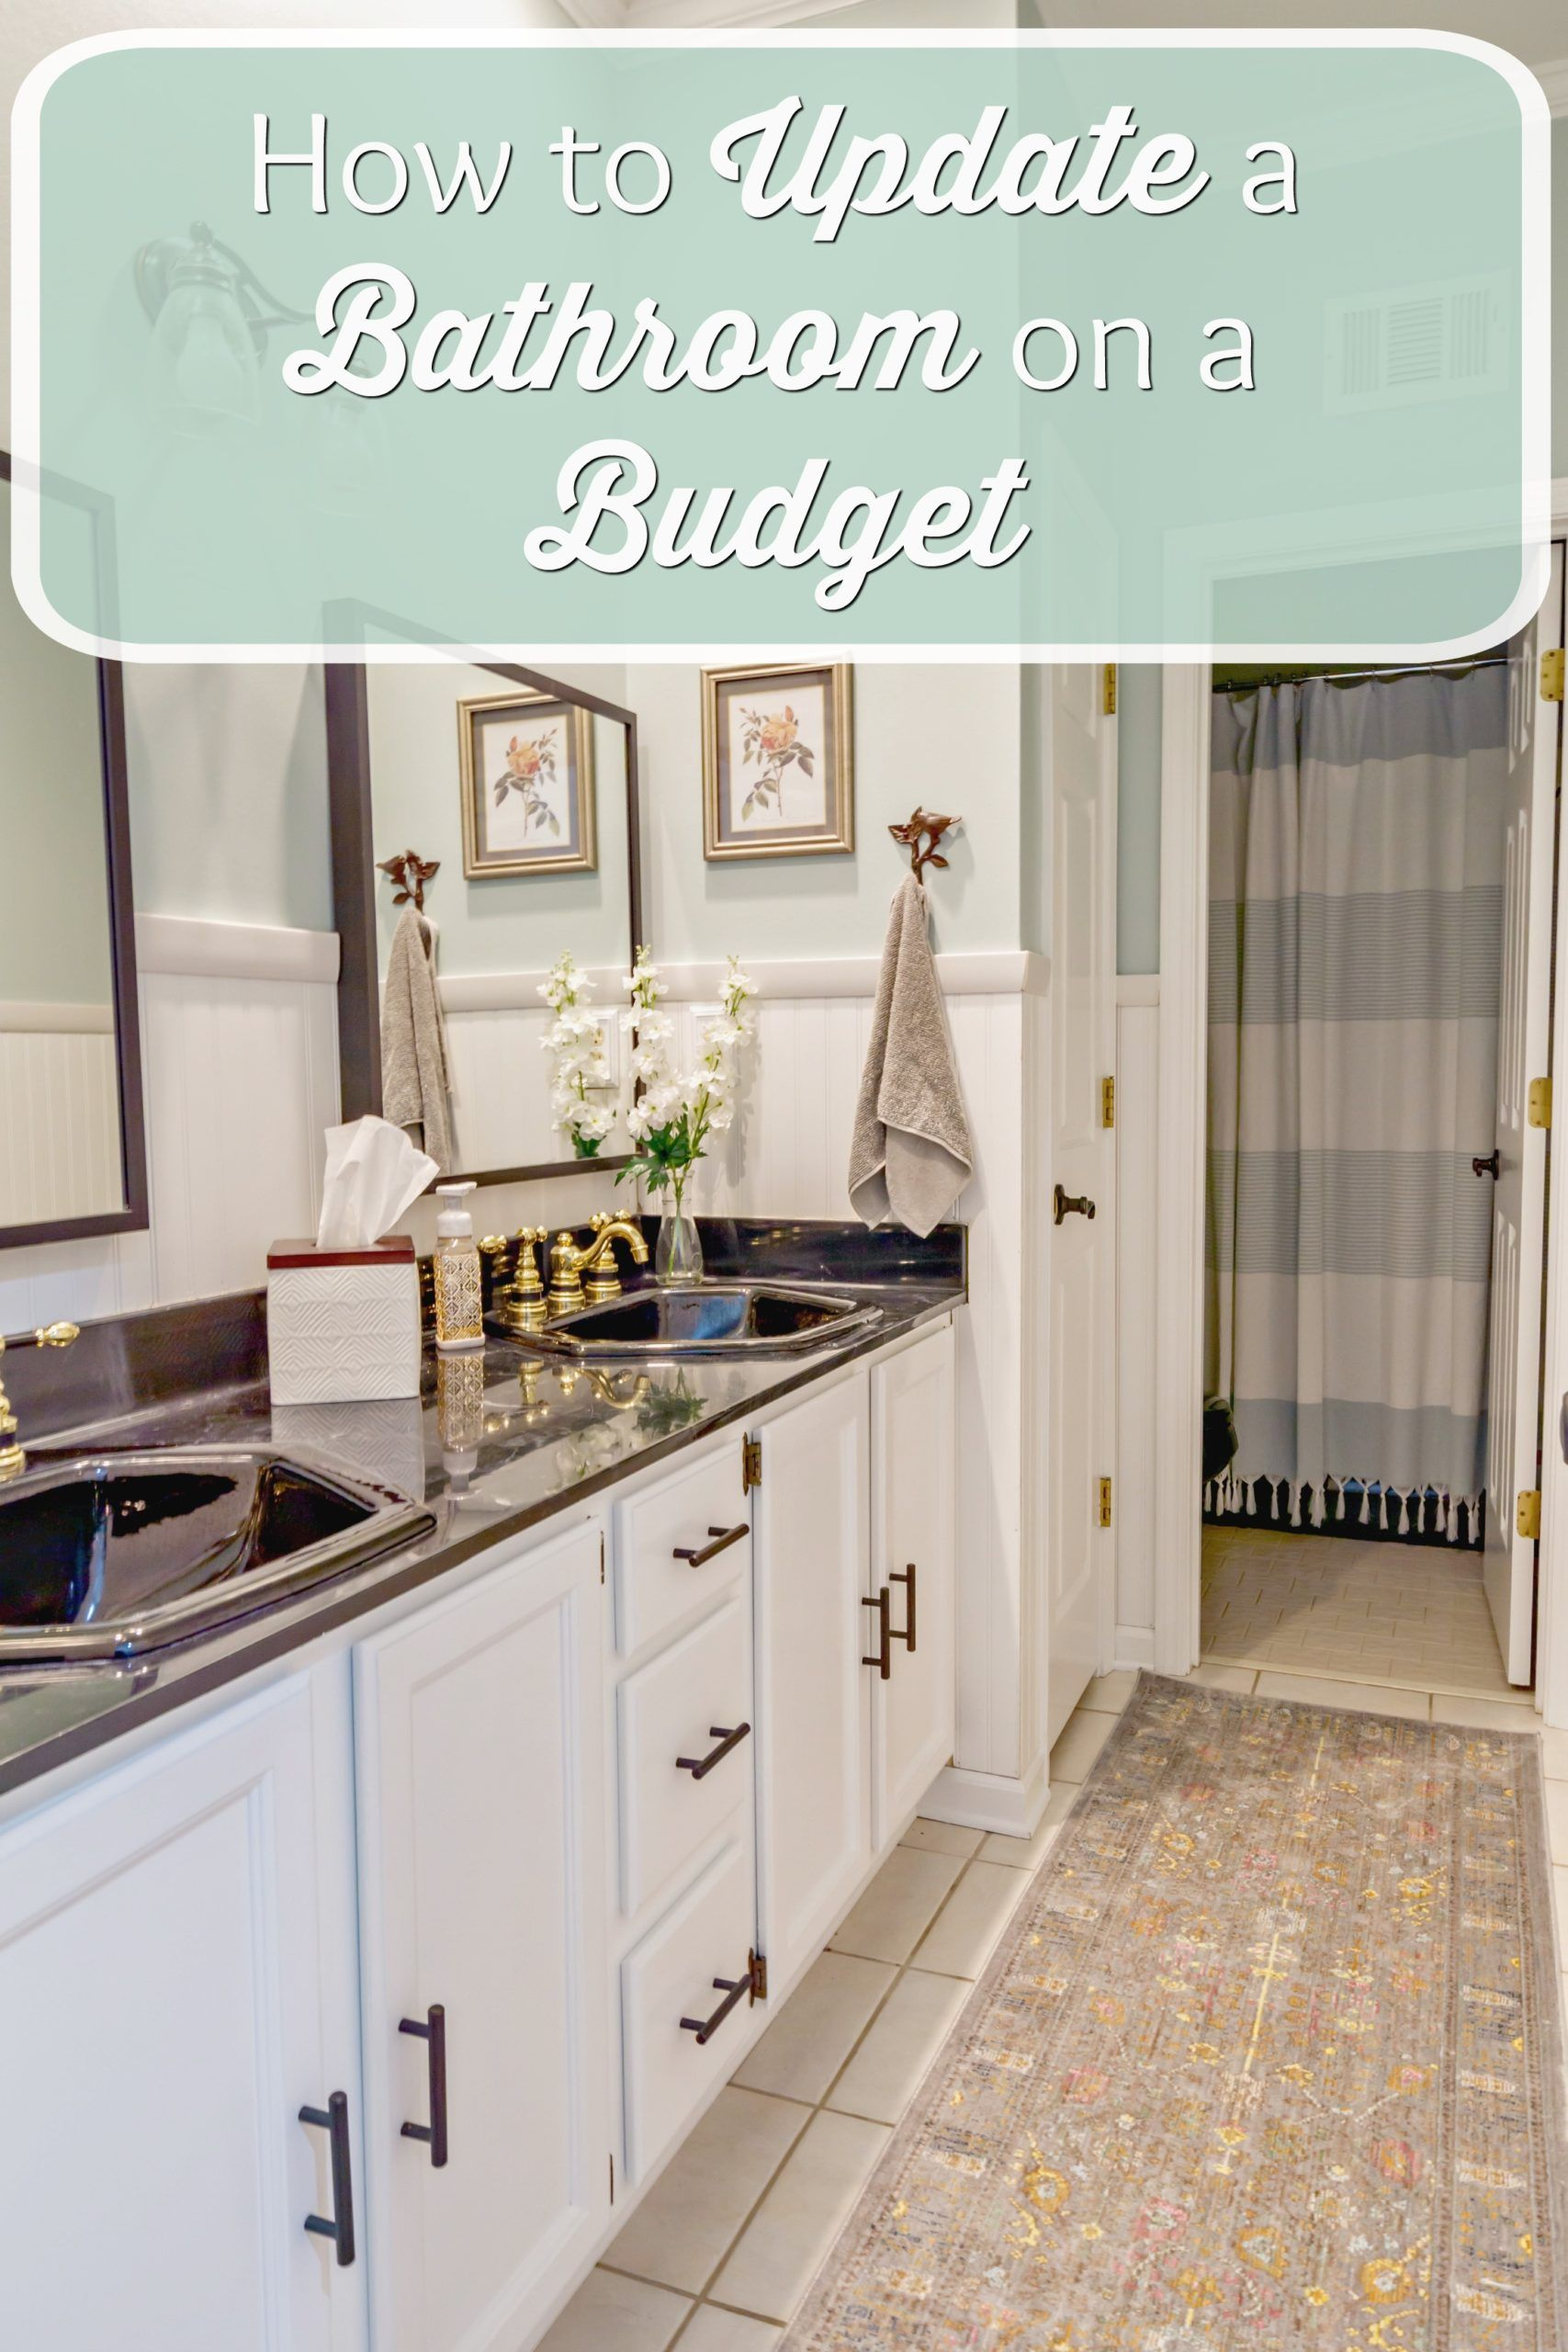 How To Update A Bathroom On A Budget Health Home And Heart In 2020 Budget Bathroom Bathroom Update Diy House Projects